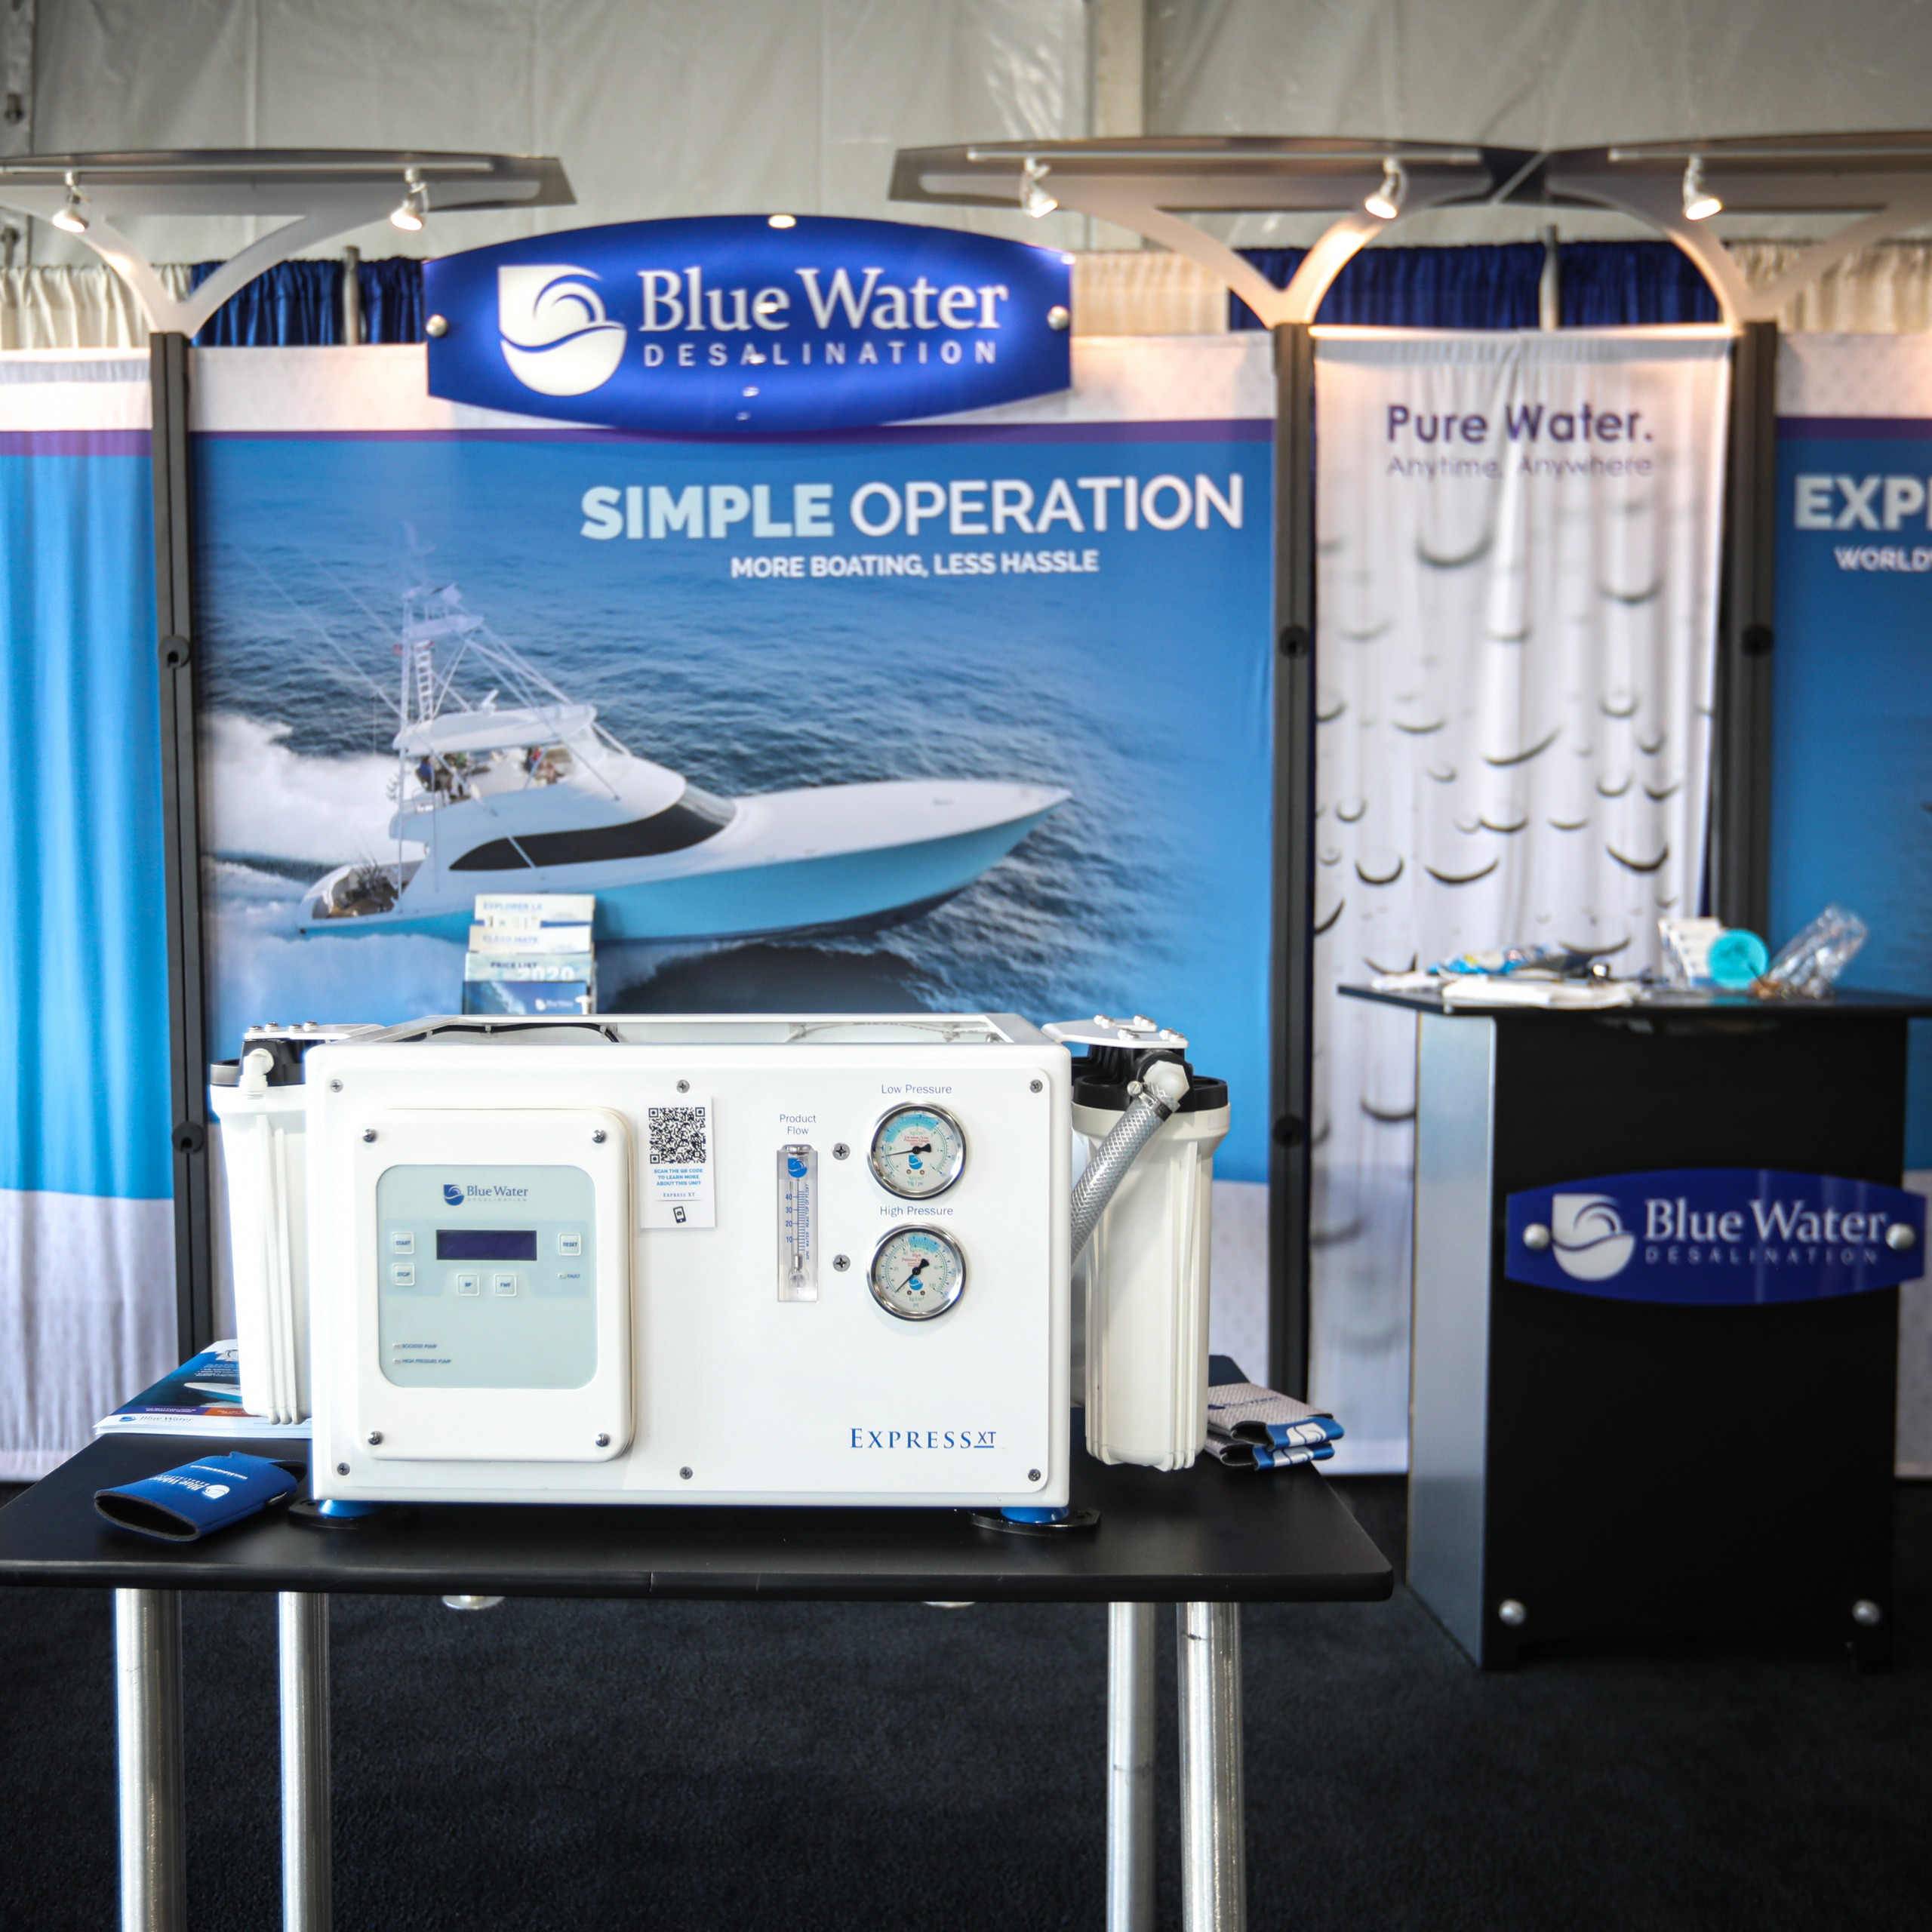 bluewater desalination express watermaker